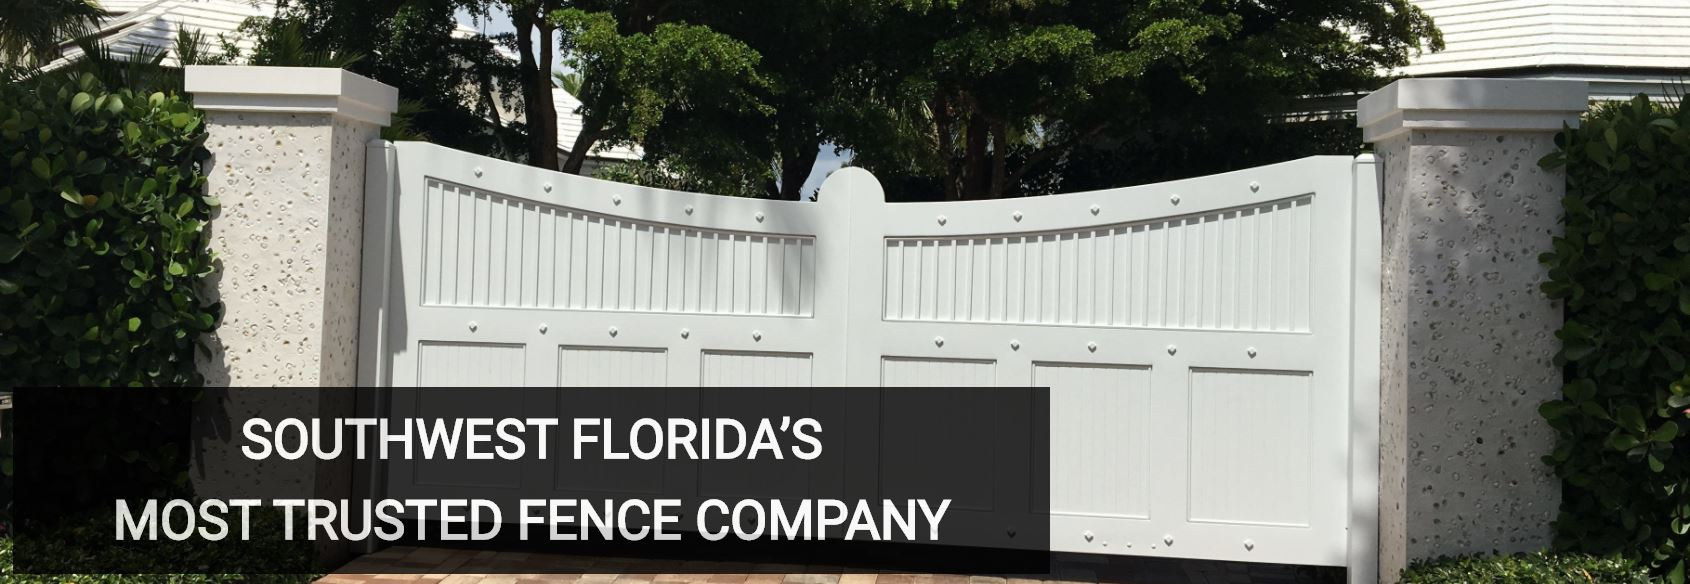 Best Security Fences for Homeowners